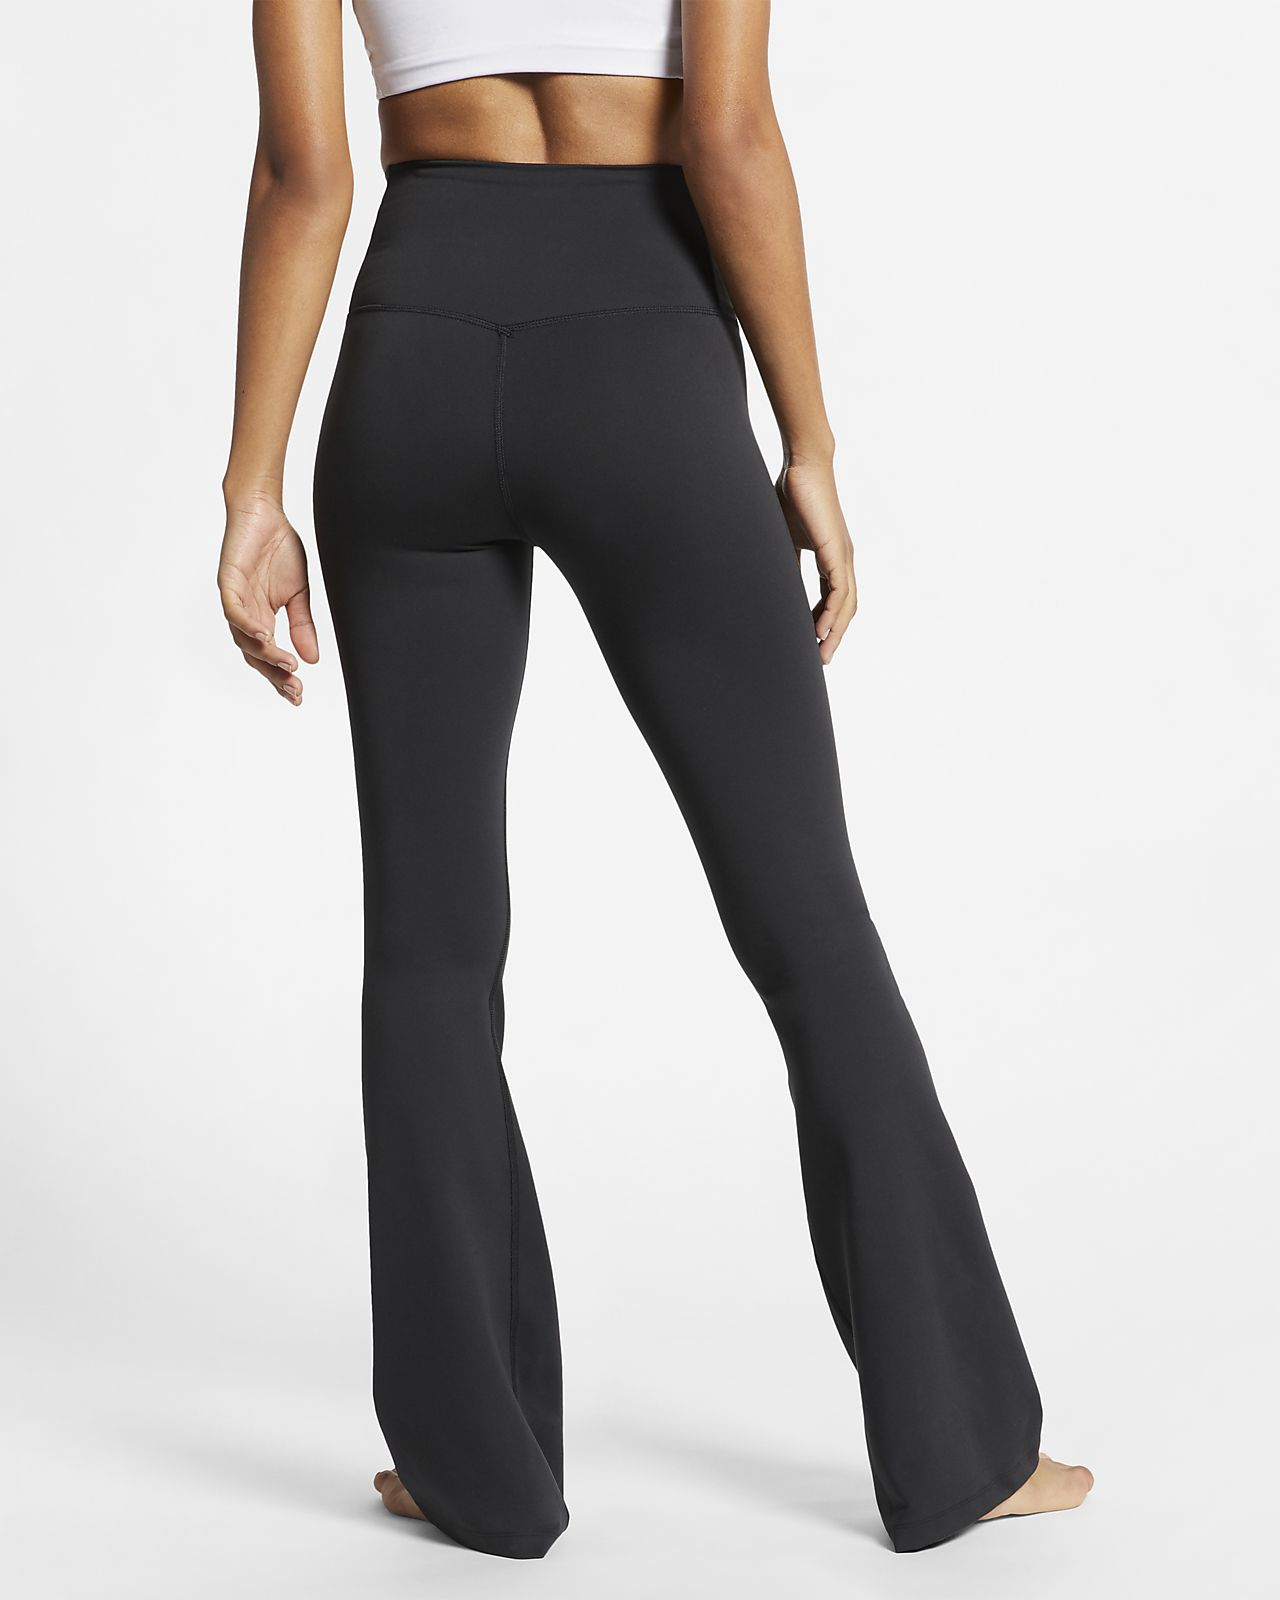 3b74b8f787ebb Nike Power Dri-FIT Women's Training Tights. Nike.com AE